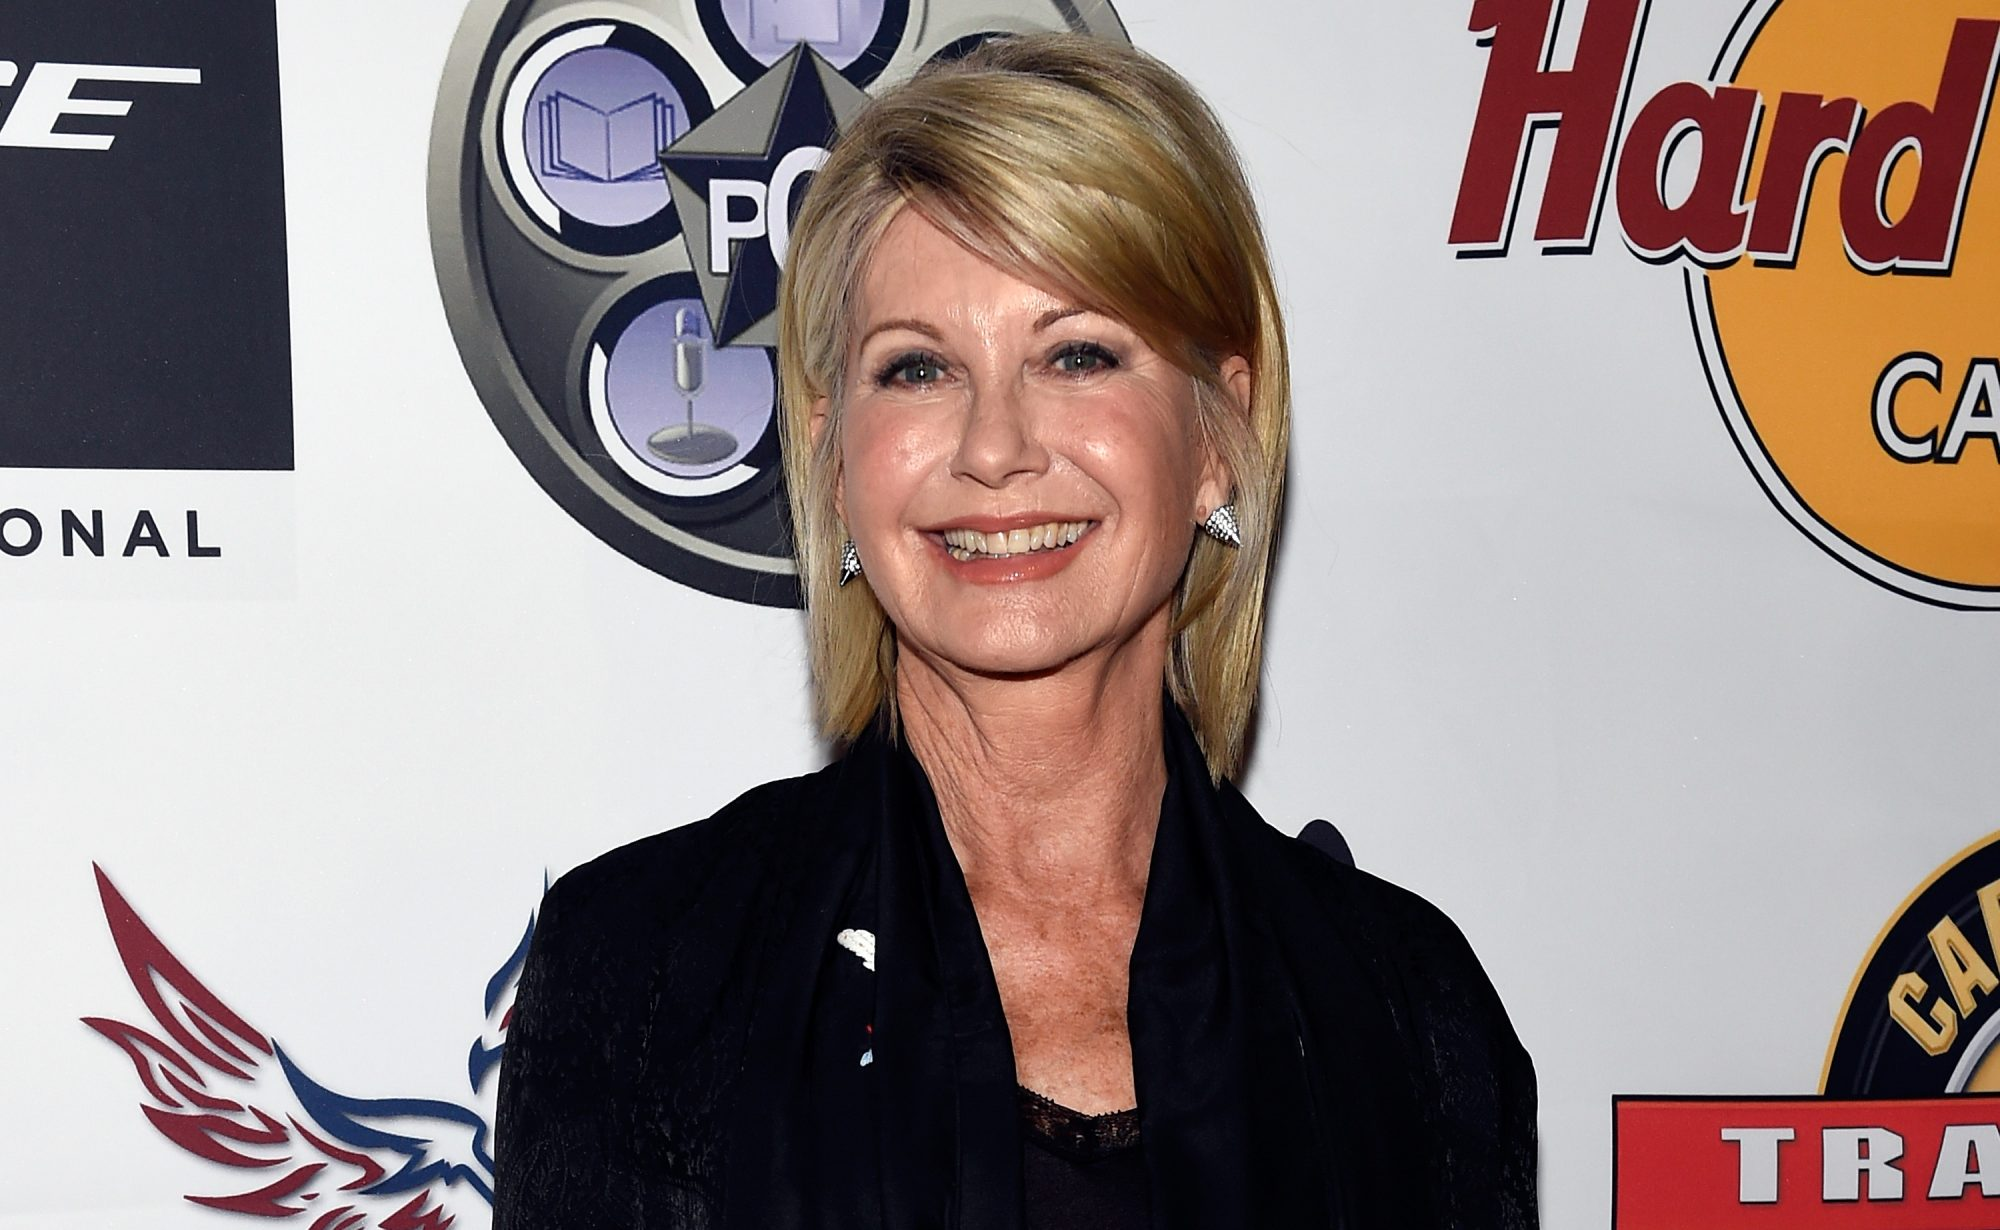 Olivia Newton-John (diagnosed 1992 at age 44)